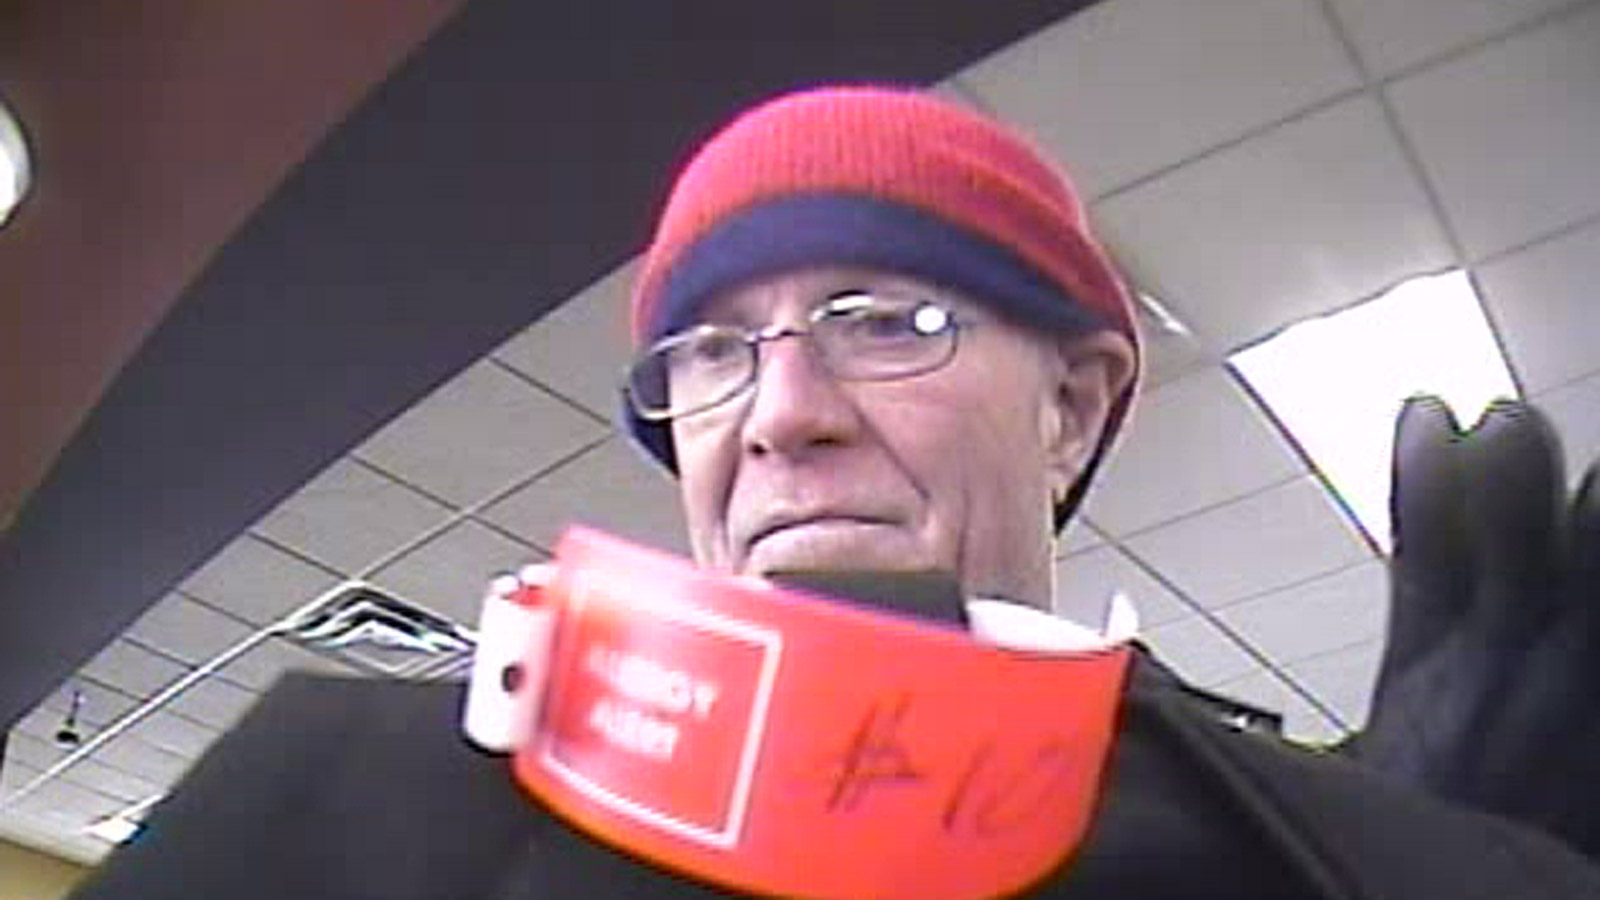 The FirstBank robbery suspect on March 3 (credit: Boulder Police)